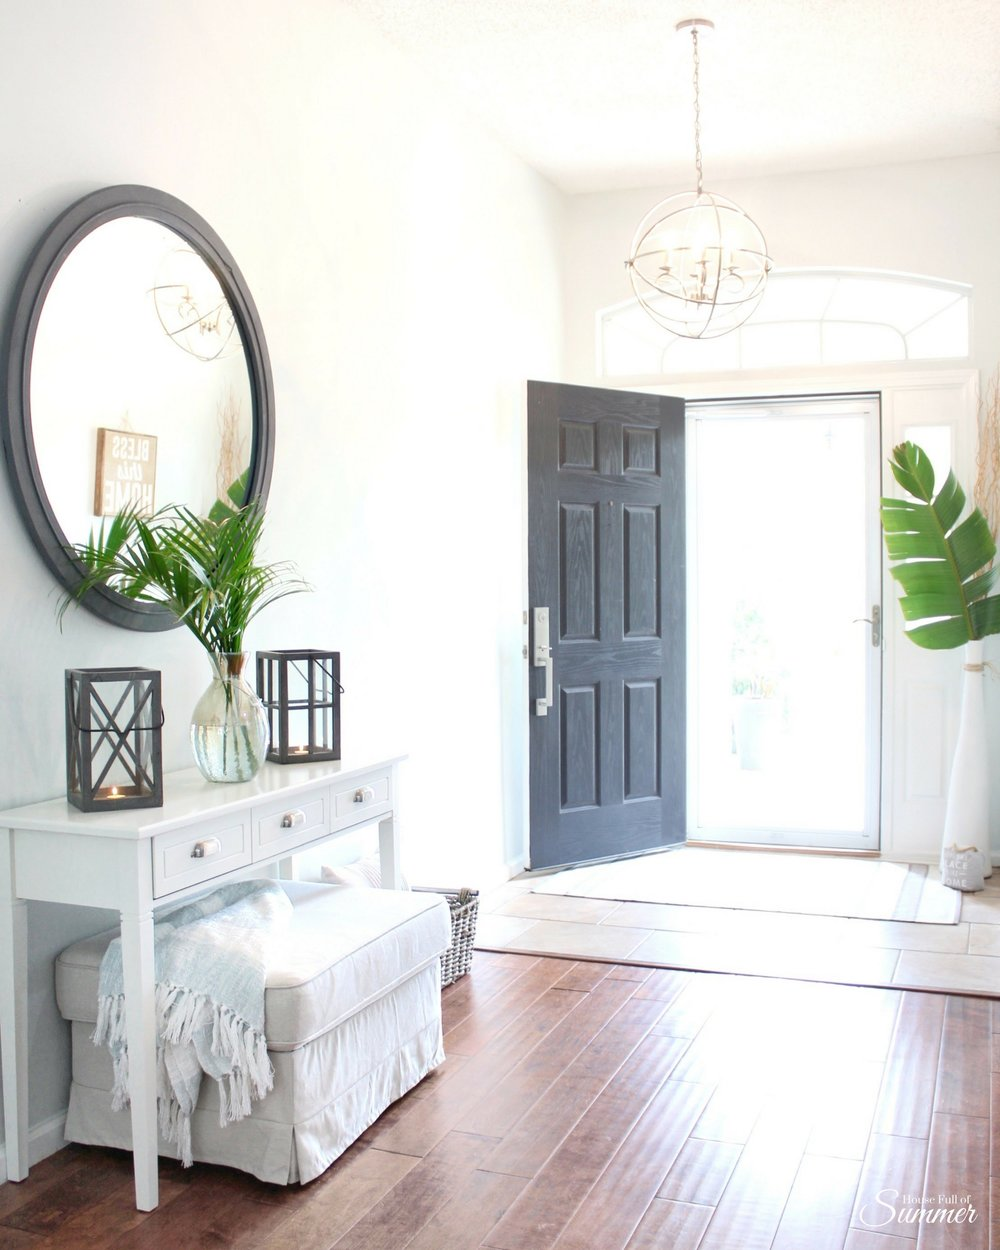 House Full of Summer Craigslist Mirror Makeover on a budget with chalk paint. Home DIY ideas, budget decorating, coastal home decor, foyer makeover, before and after, tropical decor, palm fronds, entryway decor ideas